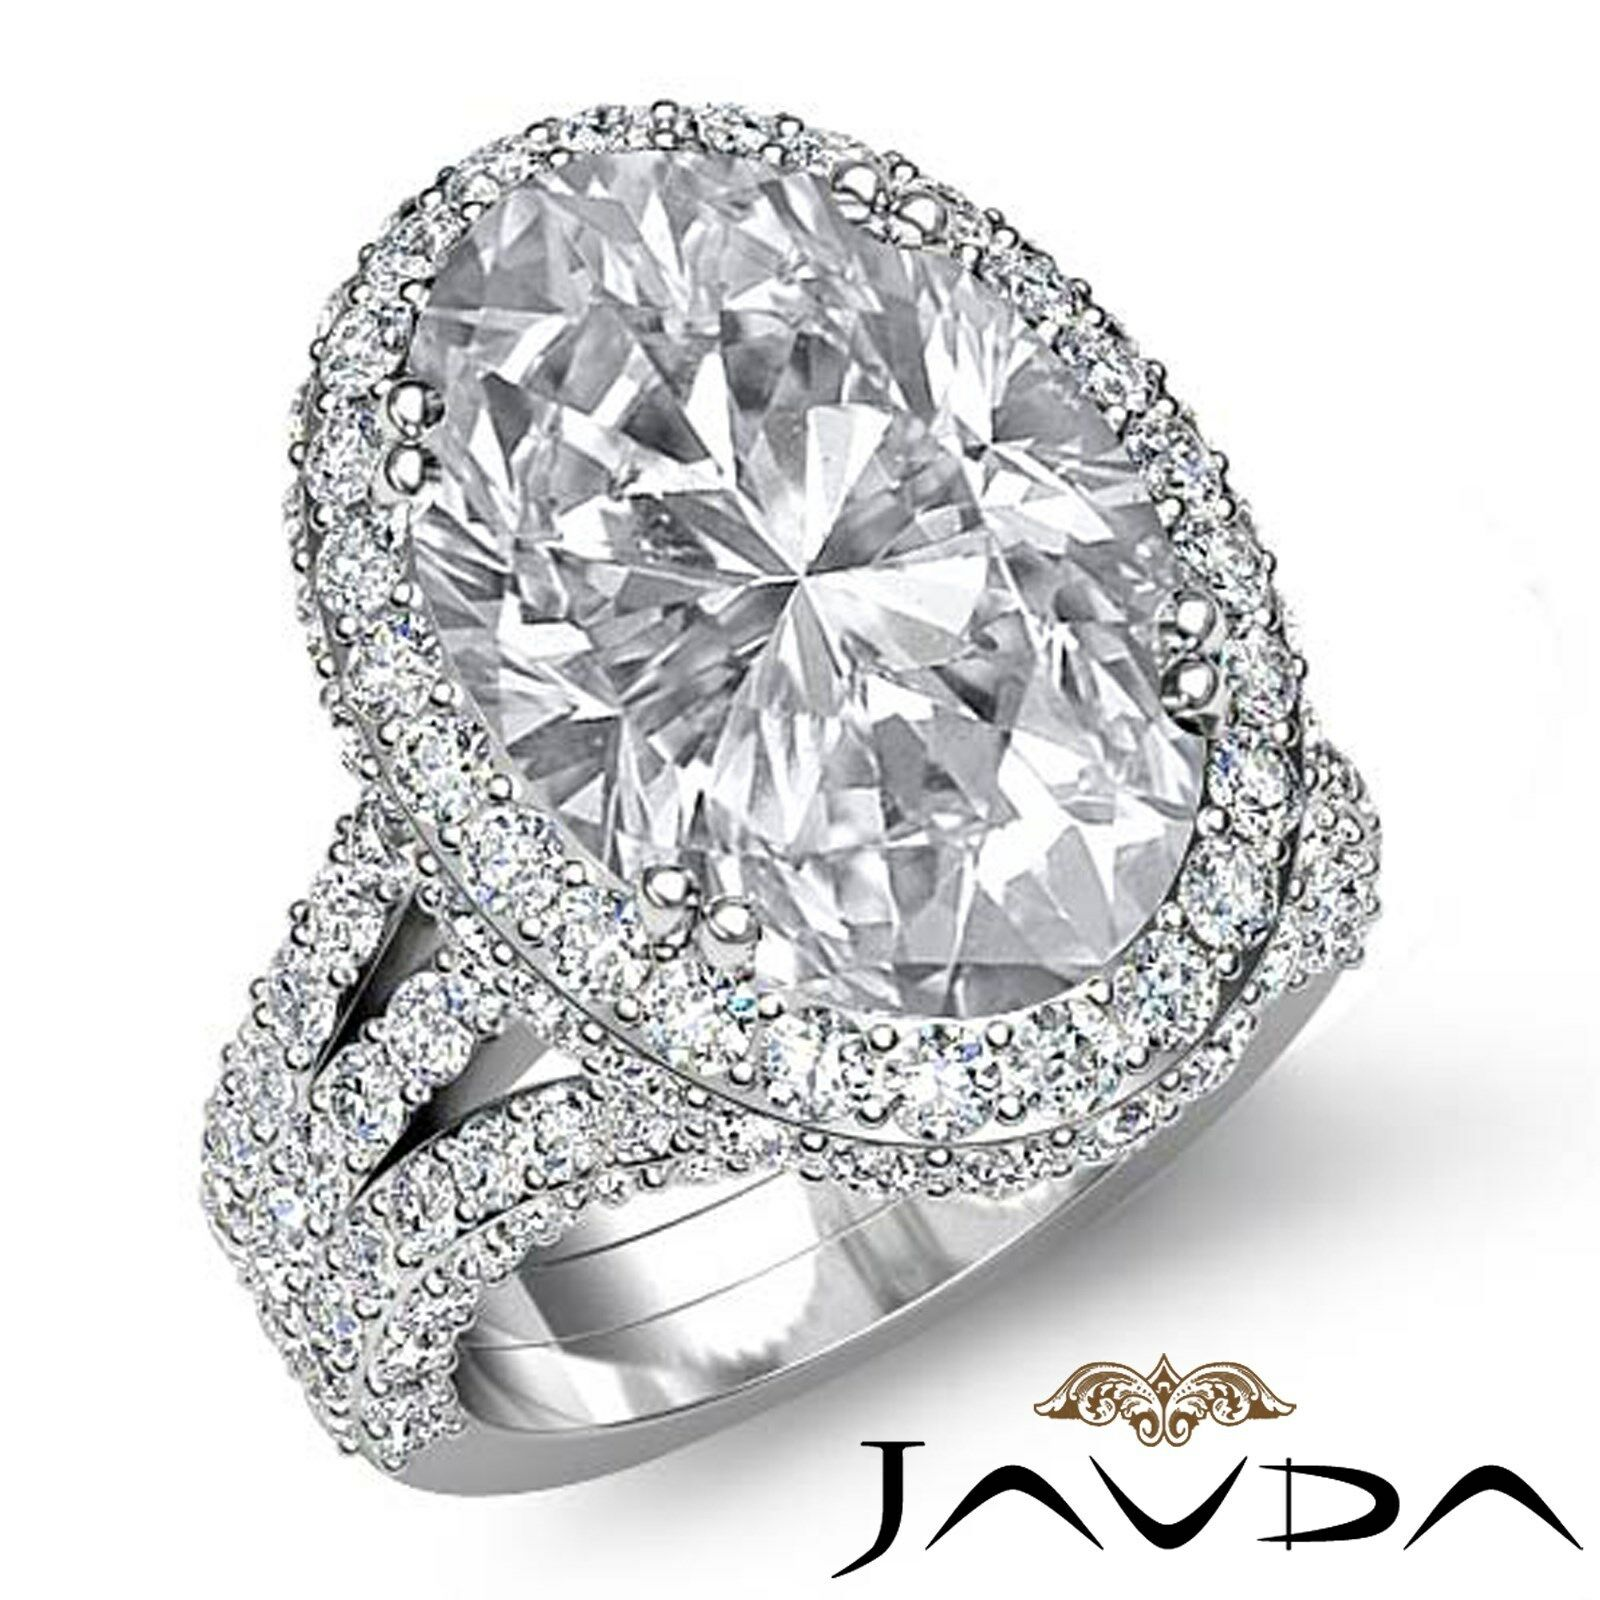 Double Prong Circa Halo Pave Bezel Oval Diamond Engagement Ring GIA F VS1 3.65Ct